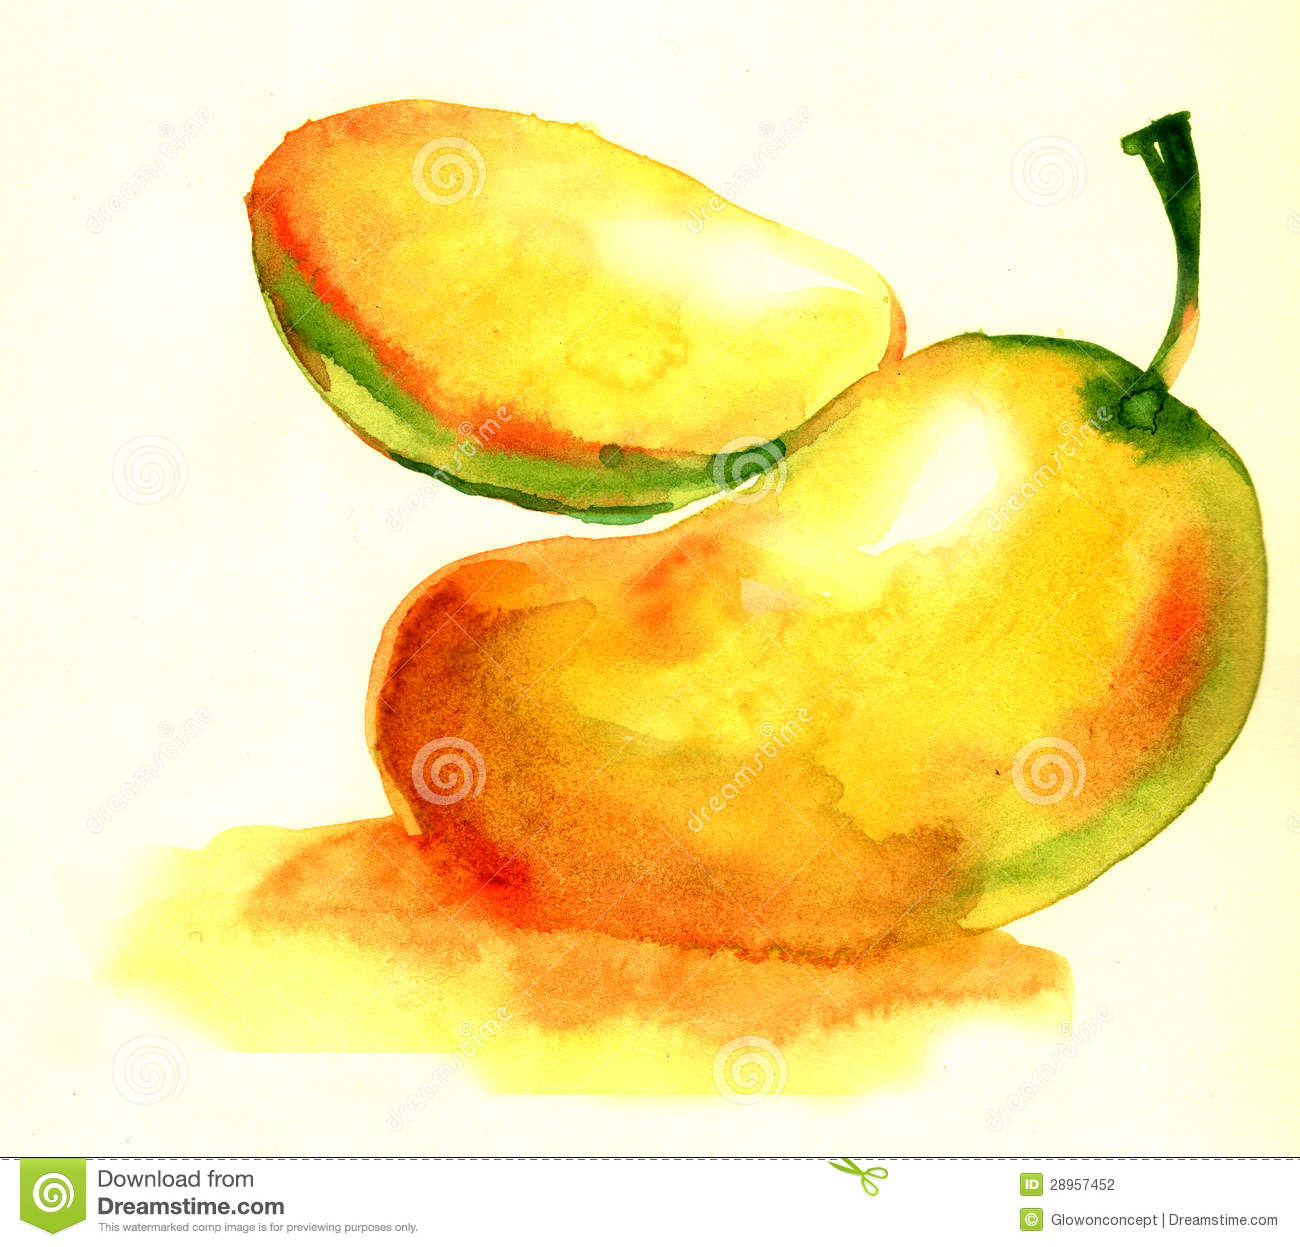 http://thumbs.dreamstime.com/z/mango-section-illustration-isolated-28957452.jpg